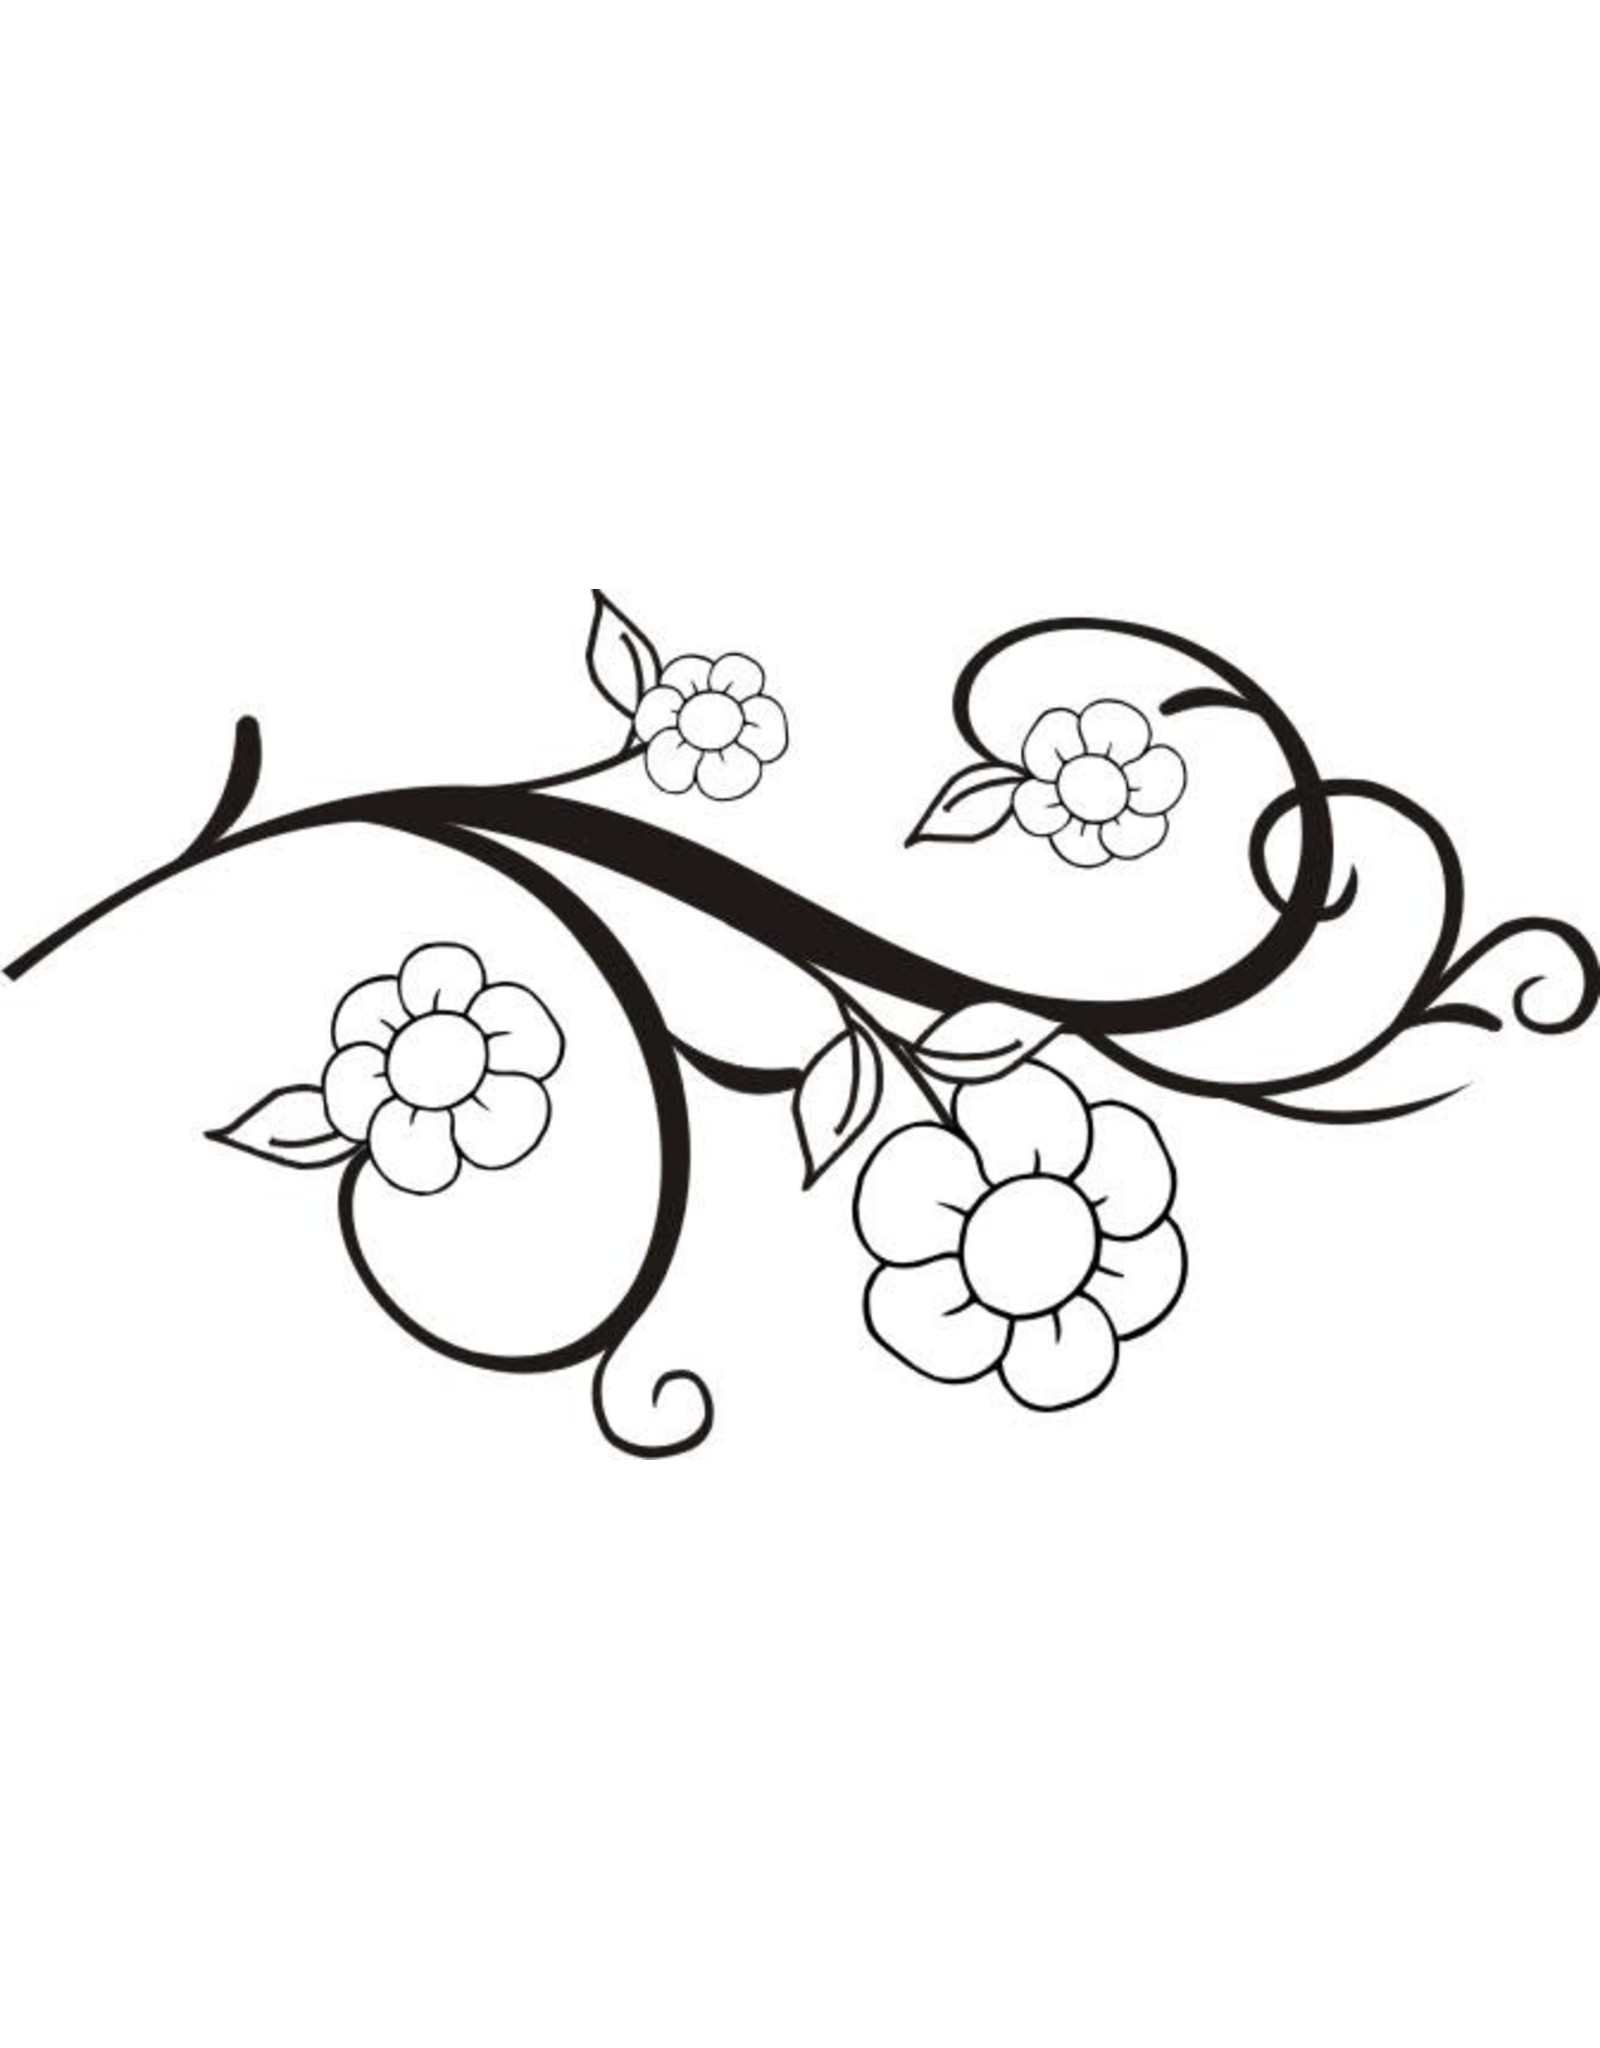 DRS Designs Flower Scroll Cling Stamp